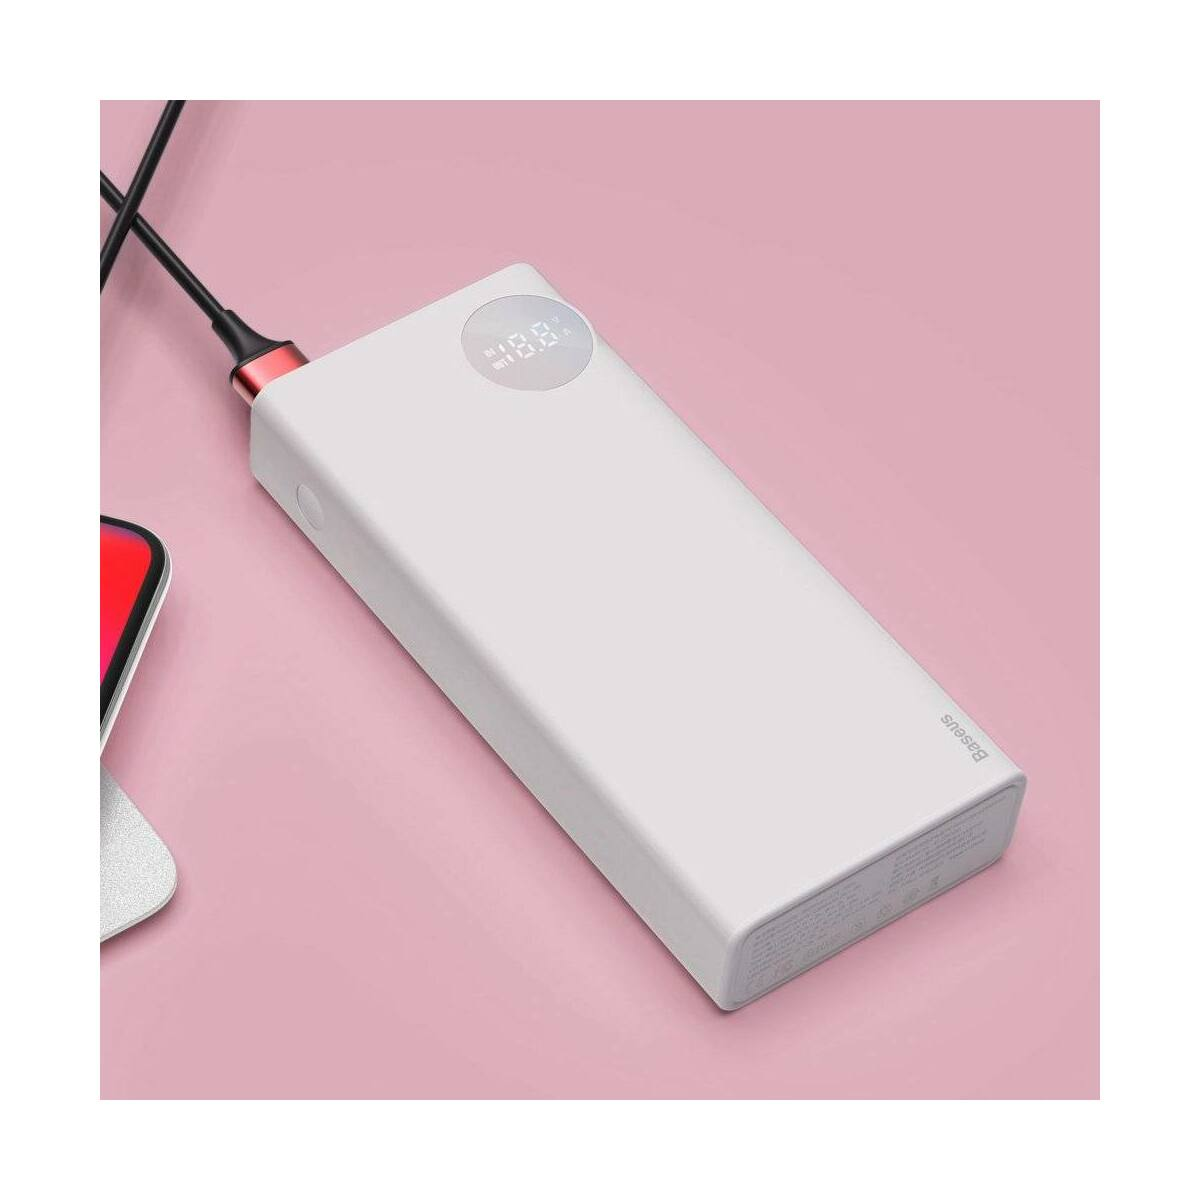 Baseus Power Bank Mulight, PD gyors töltés (Micro USB + Type-C + Lightning bem. / 2xUSB + Type-C PD kim.), 3A, 20.000 mAh, fehér (PPALL-MY02